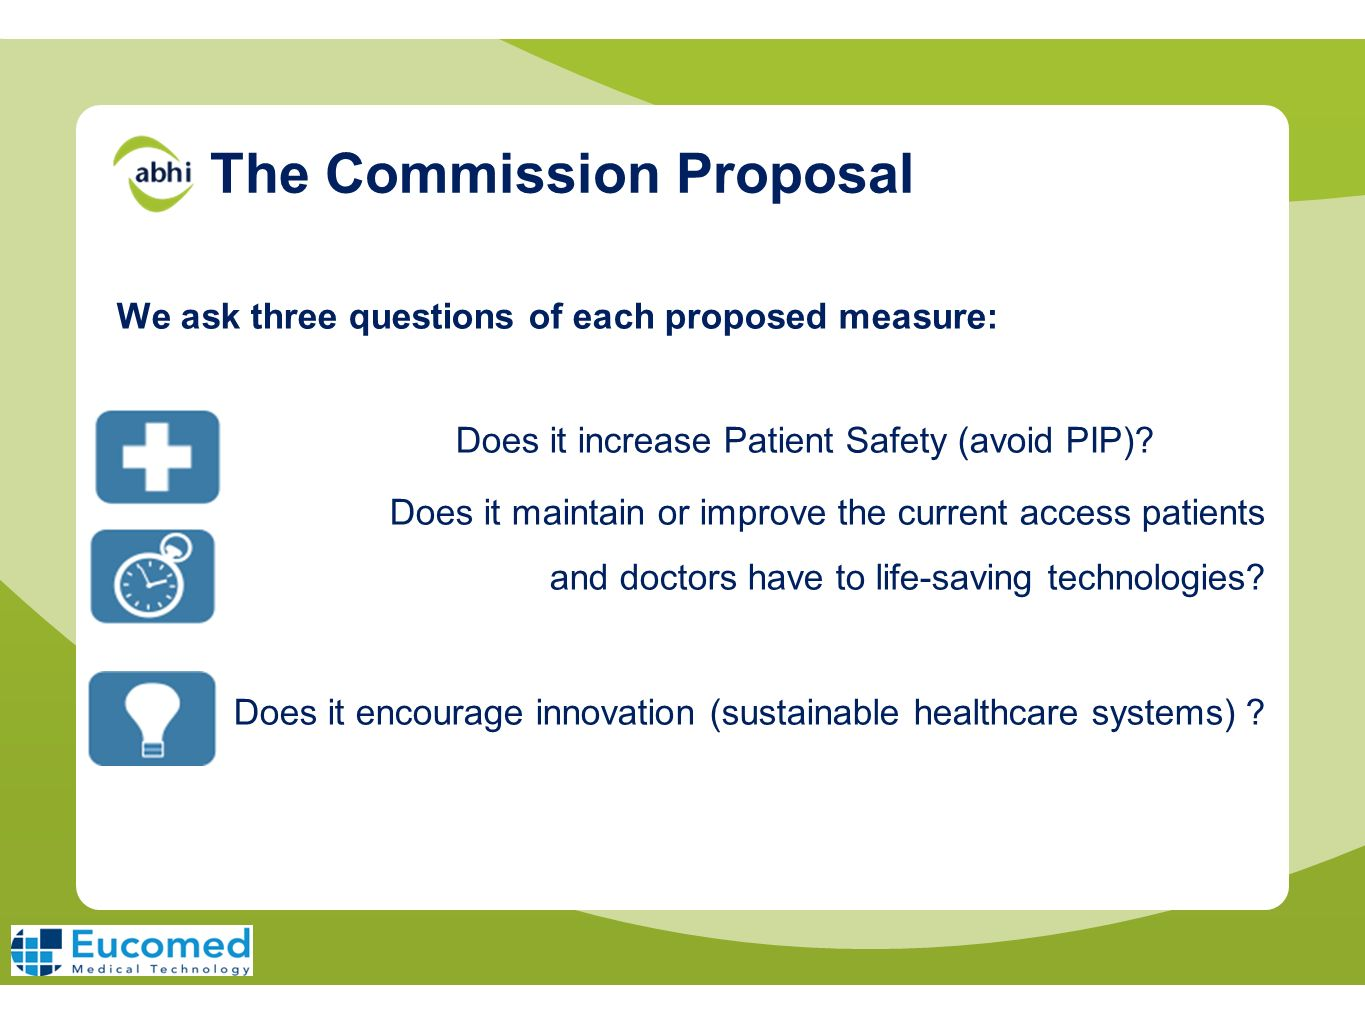 The Commission Proposal